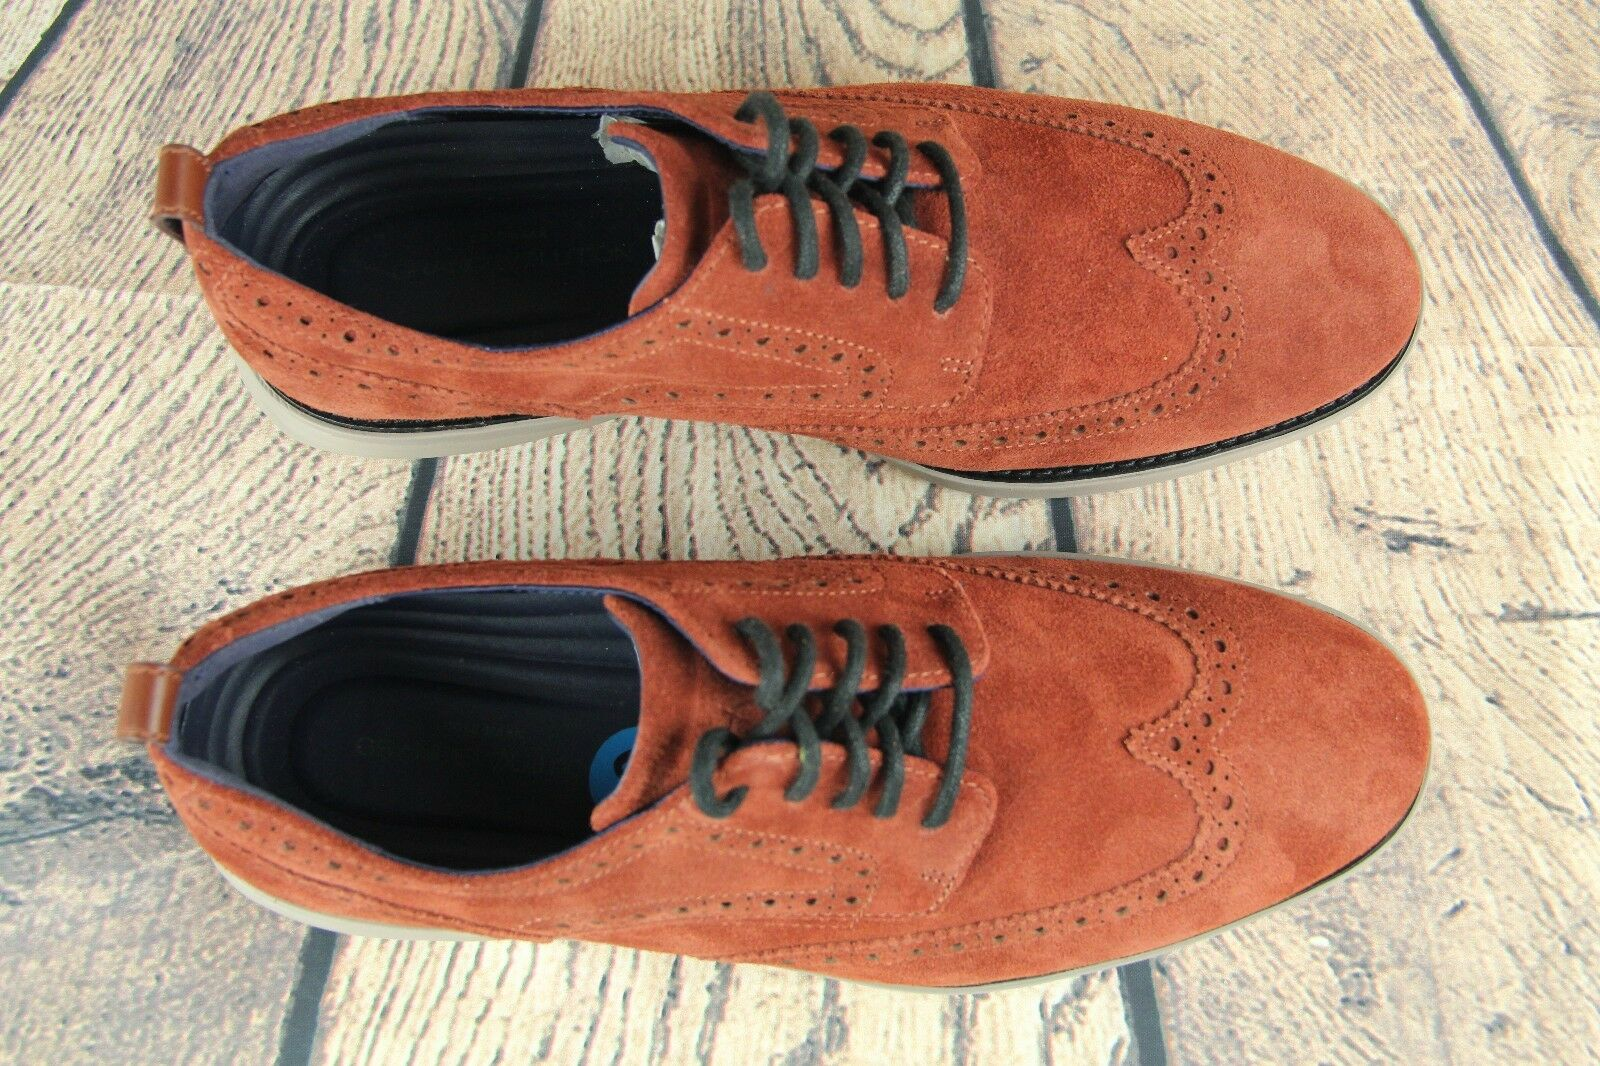 cf5298f8edd1 ... Cole Haan GrandEvolution GrandEvolution GrandEvolution Wingtip Oxford  Shoes Brandy Brown C26314 Size 11M 0c30b6 ...